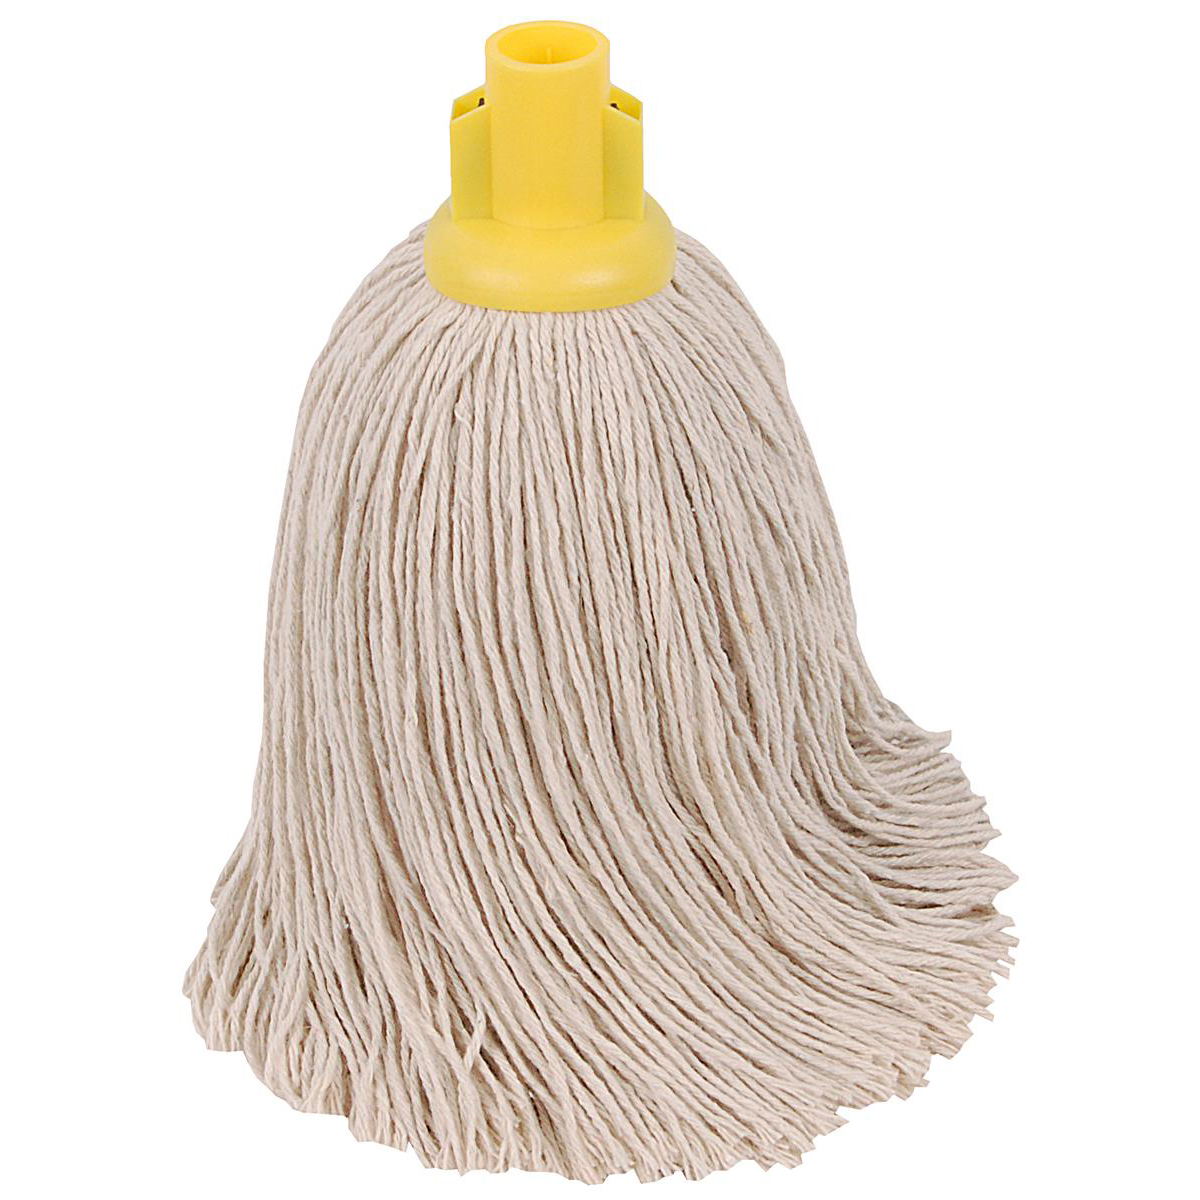 Robert Scott & Sons Twine Socket Mop for Rough Surfaces 16oz Yellow Ref 101858YELLOW Pack 10